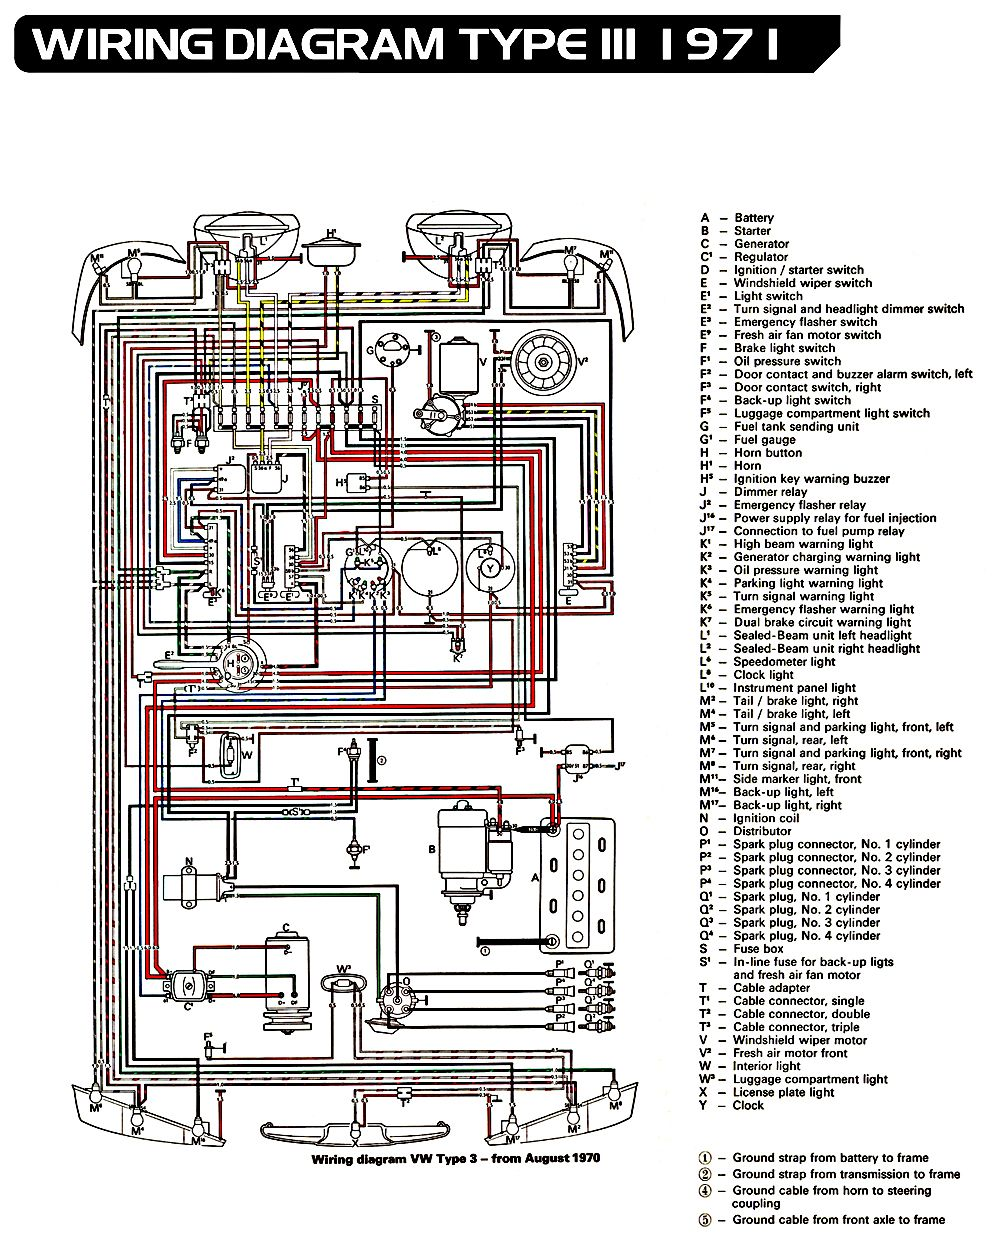 hight resolution of 1971 type 3 vw wiring diagram so simple compared to a modern ecu